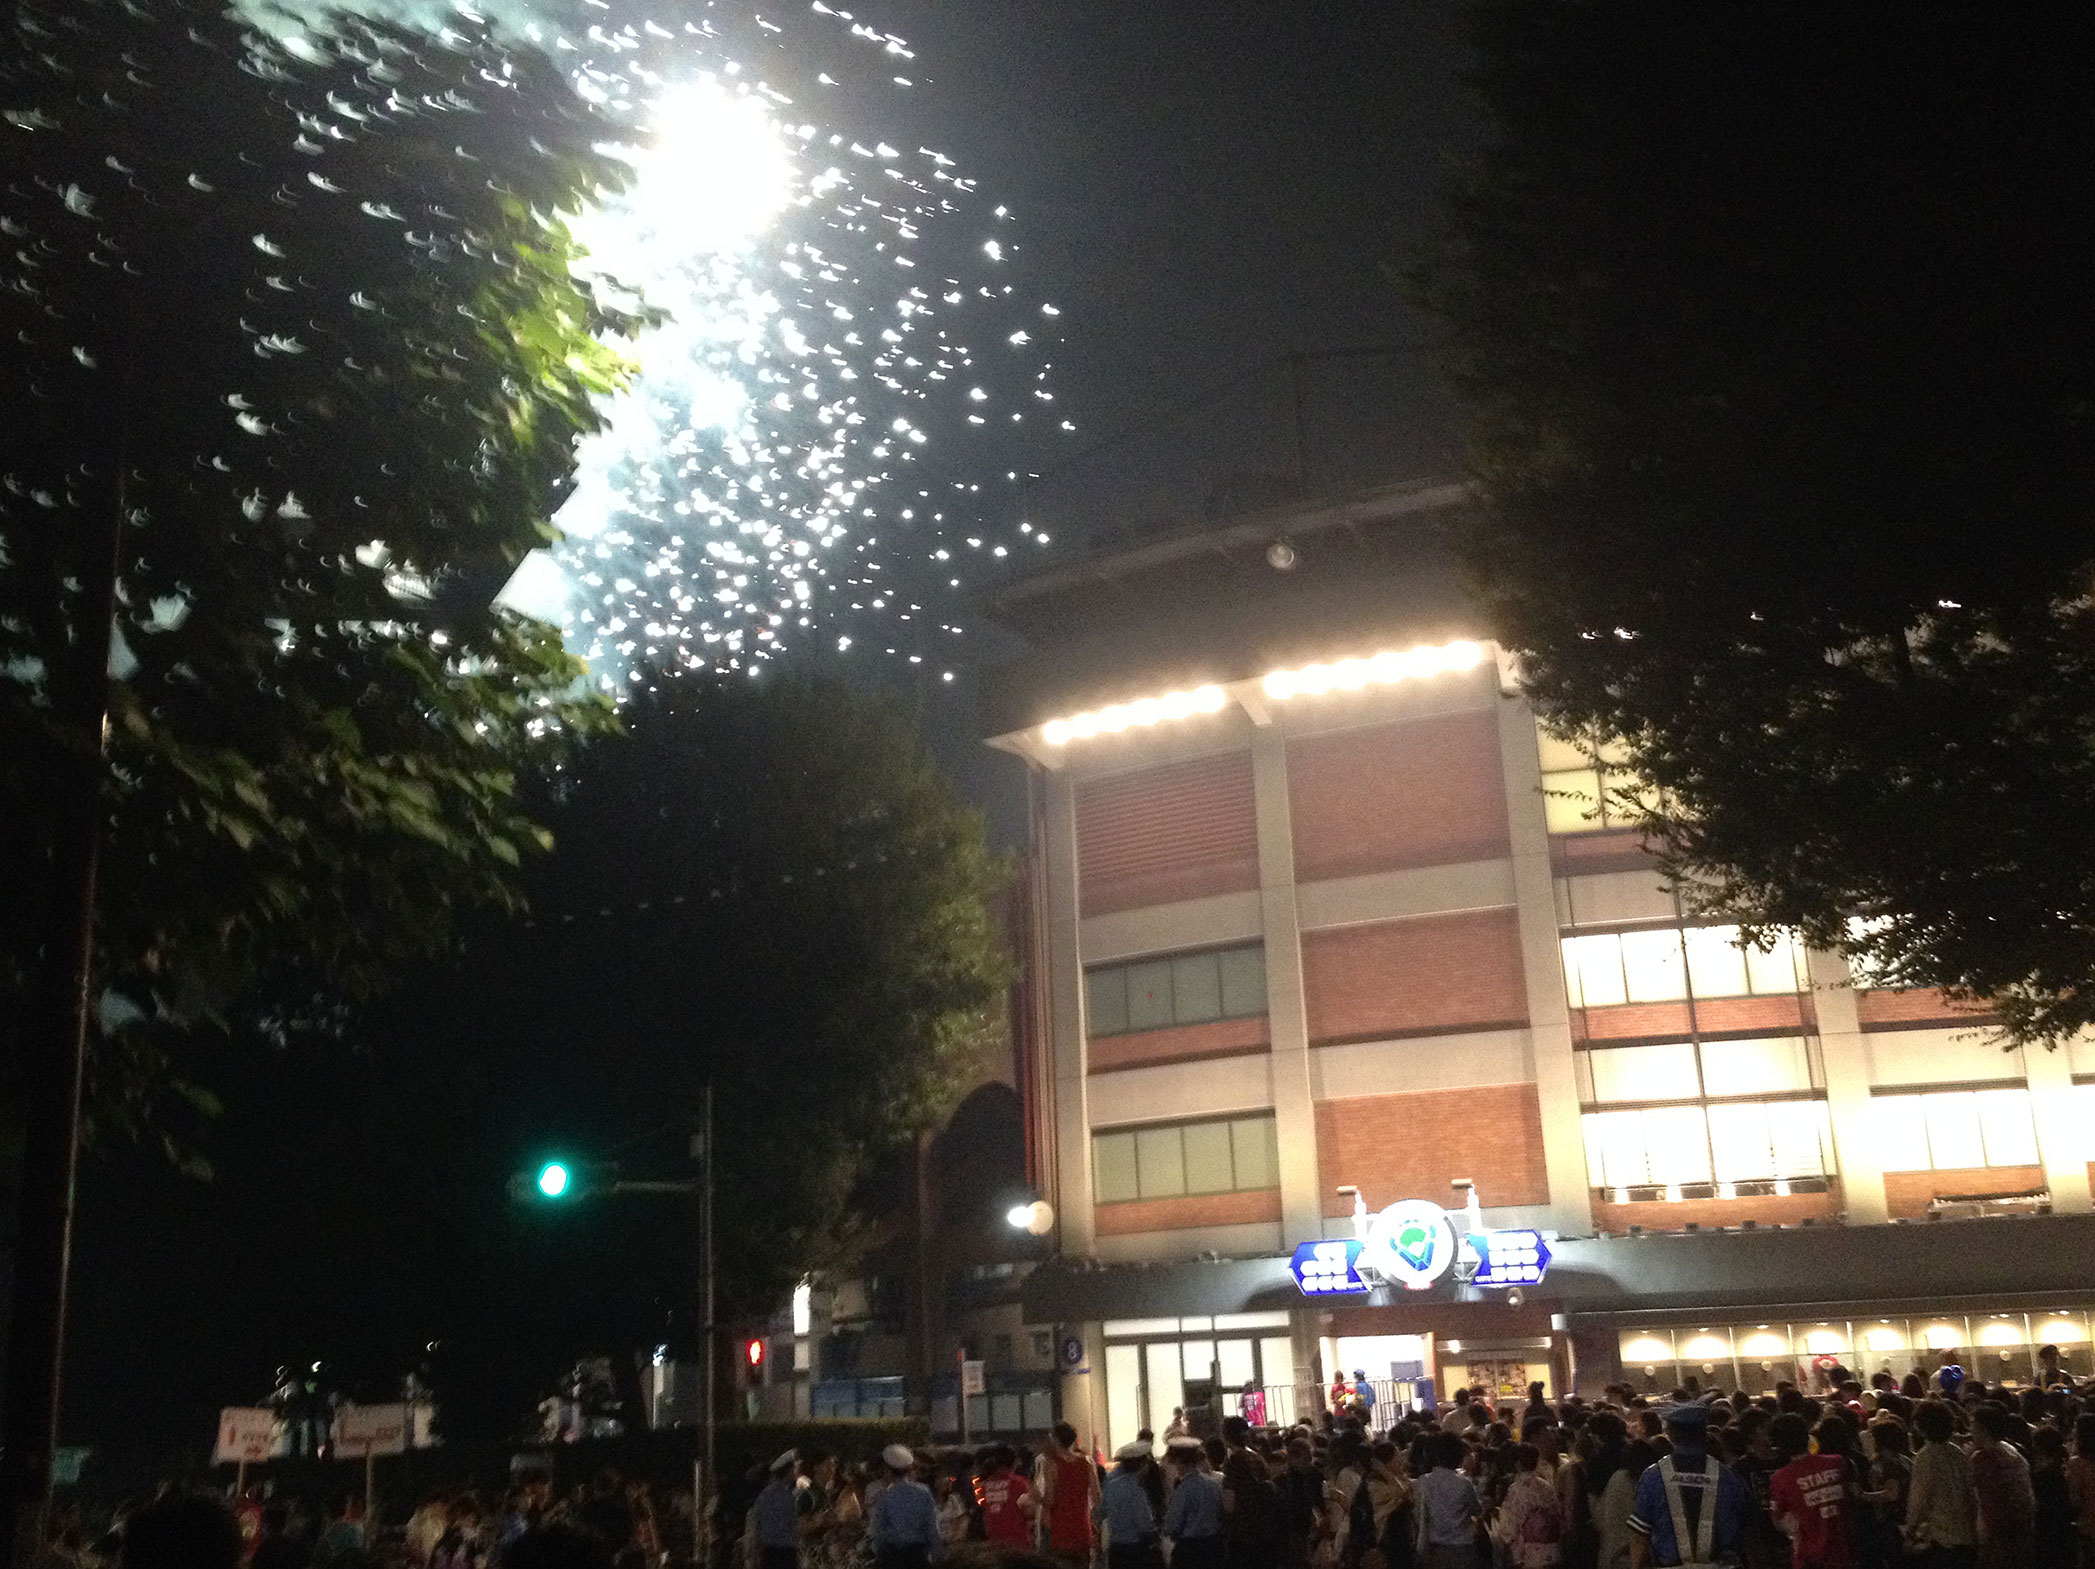 Hanabi festival...those fireworks look awfully close there...